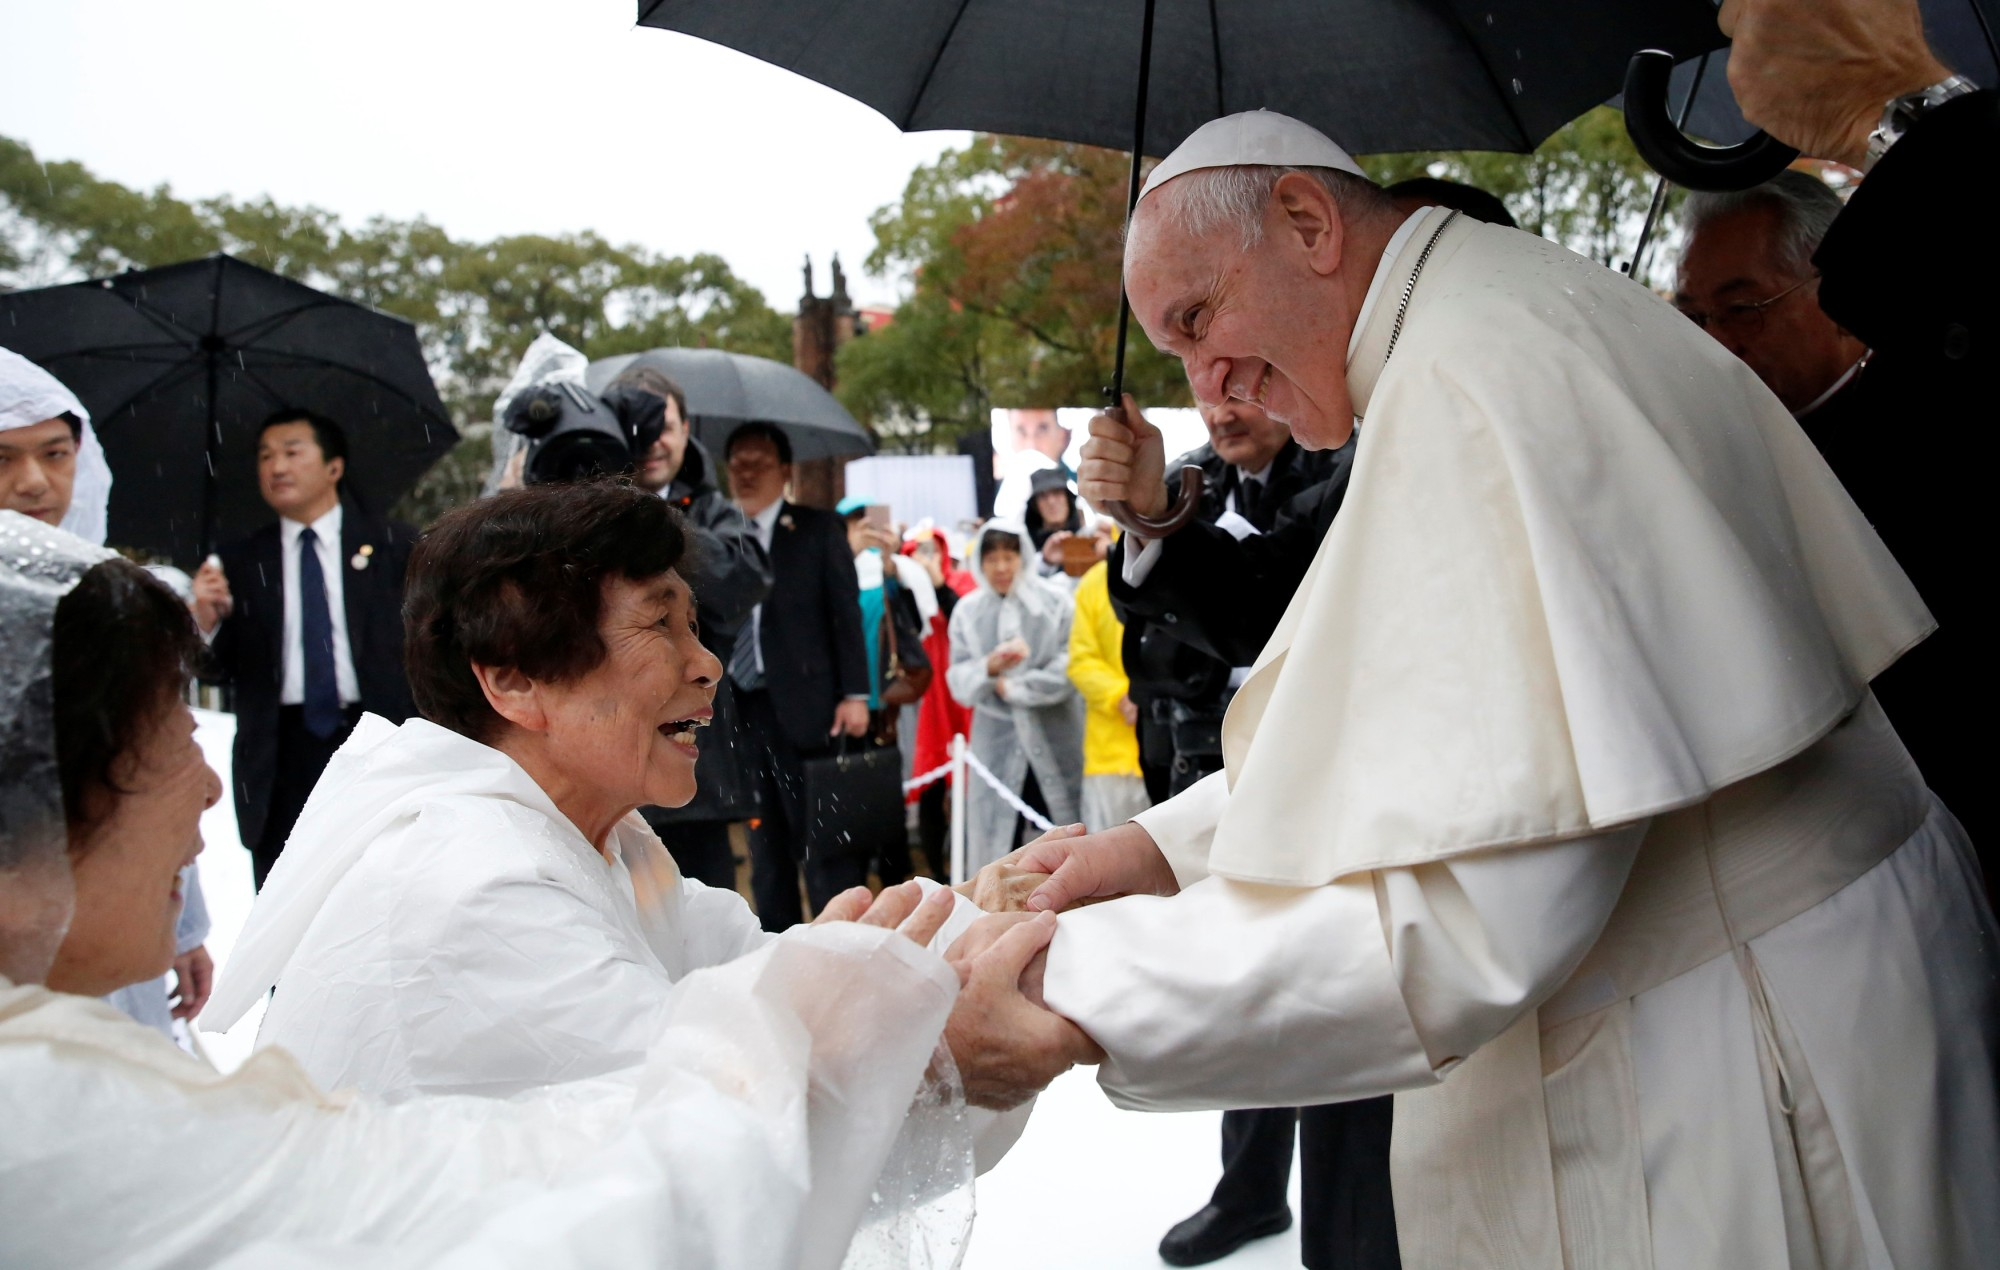 Pope Francis greets well-wishers at the Atomic Bomb Hypocenter Park in Nagasaki on Sunday. | REUTERS